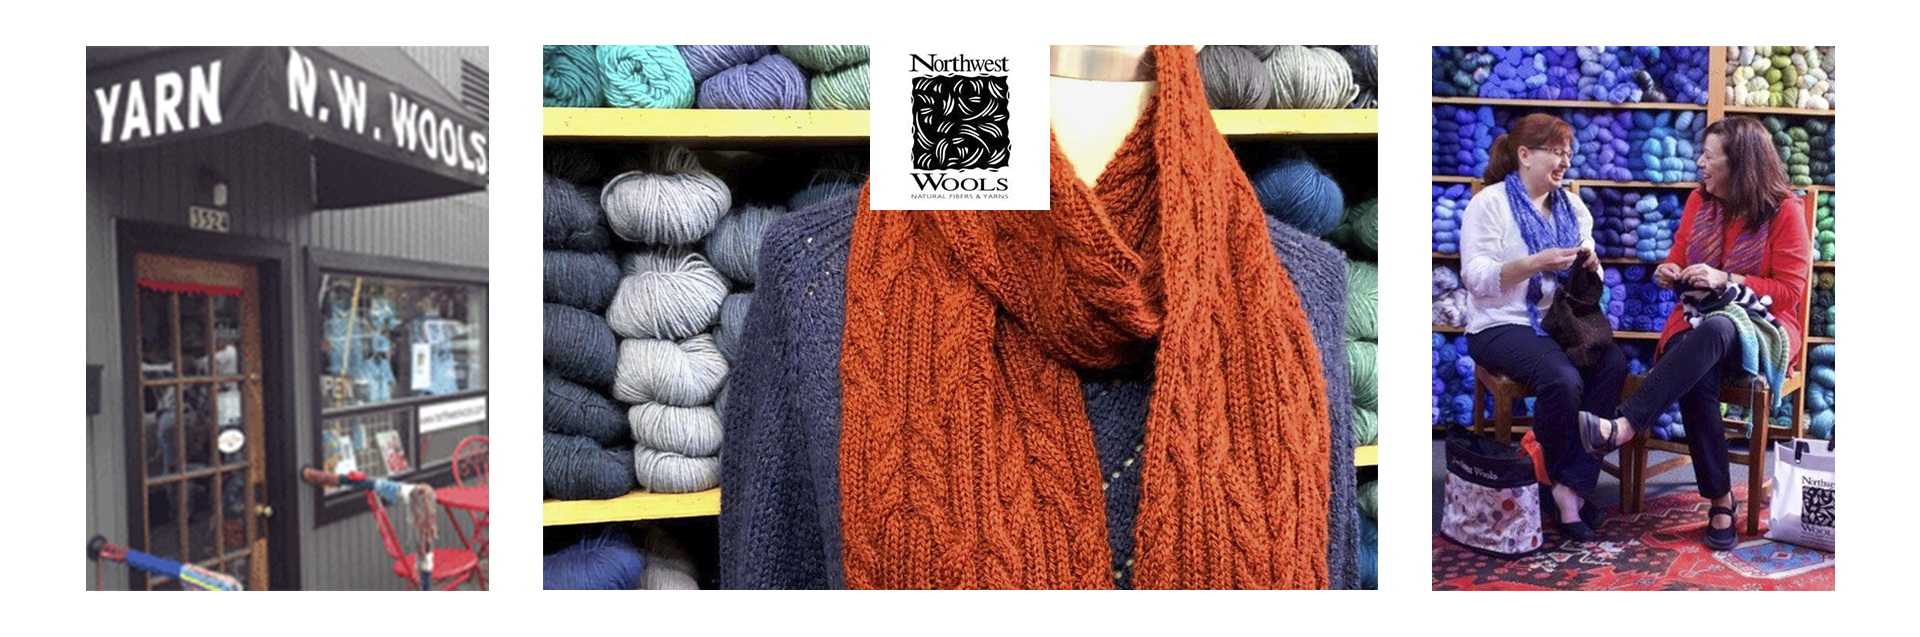 Portland's Oldest Yarn Shop providing all natural yarns and fibers for knitting, crocheting, weaving, spinning, dyeing and felting. Staffed by friendly Experts and located in the charming Multnomah Village neighborhood for over 35 years!